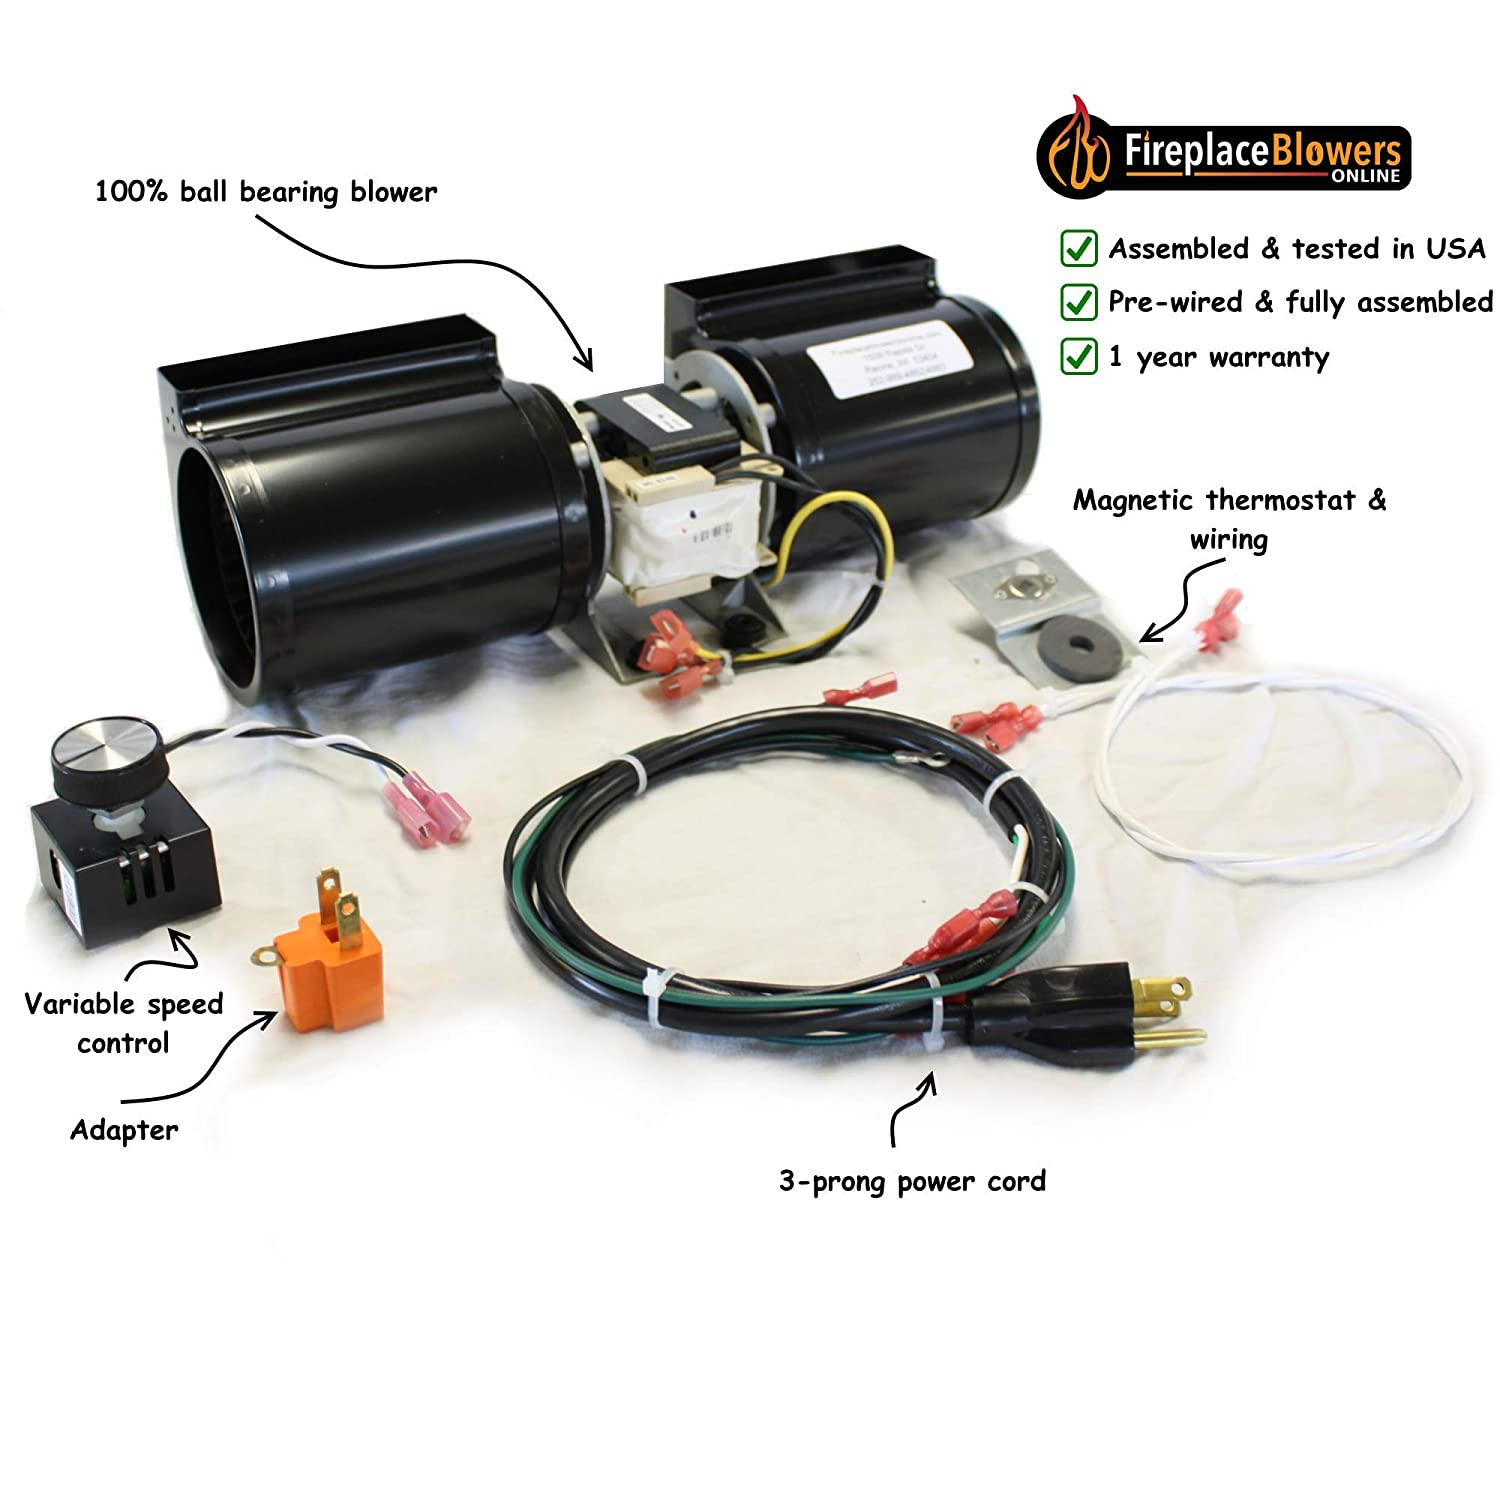 Gfk 160 Fireplace Blower Kit For Heat N Glo Hearth And Home Depot Furnace Ac Wiring Quadra Fire Kitchen